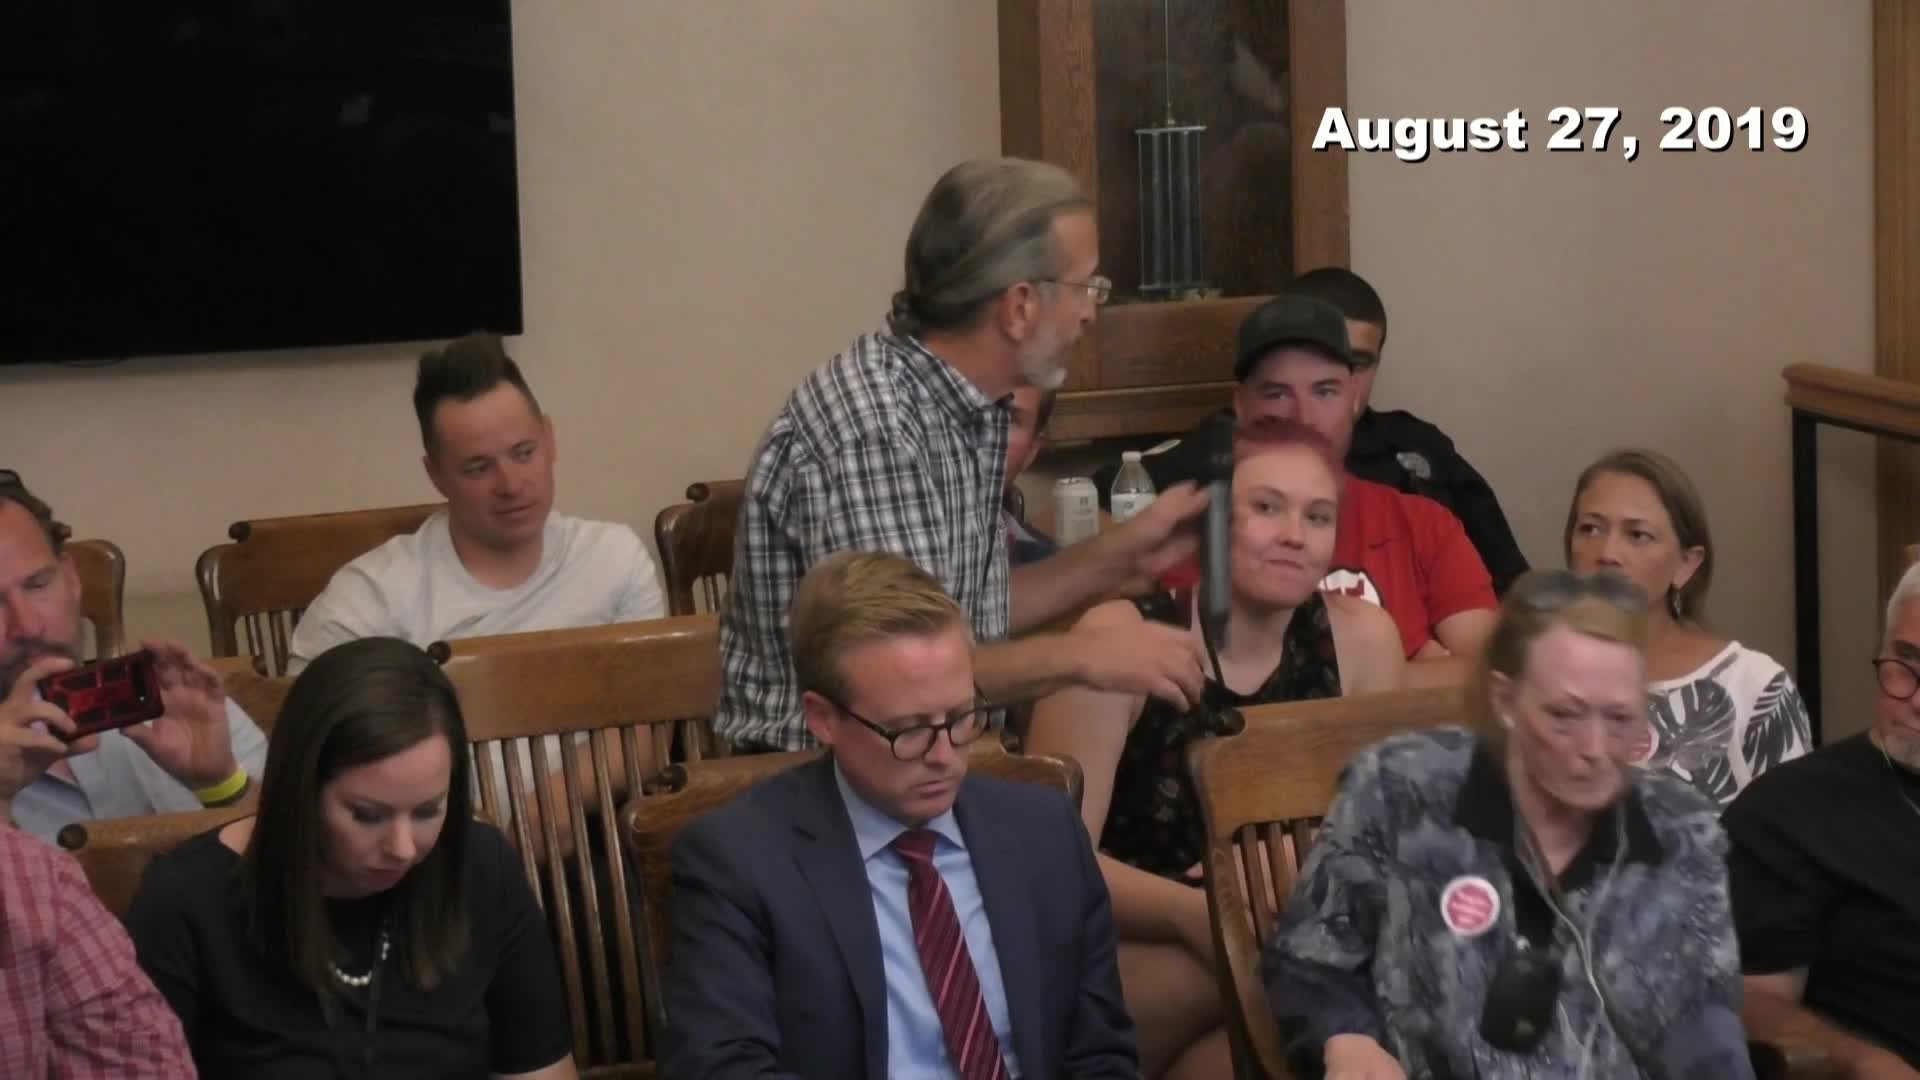 Redevelopment Agency (RDA) Meeting - 08/27/2019